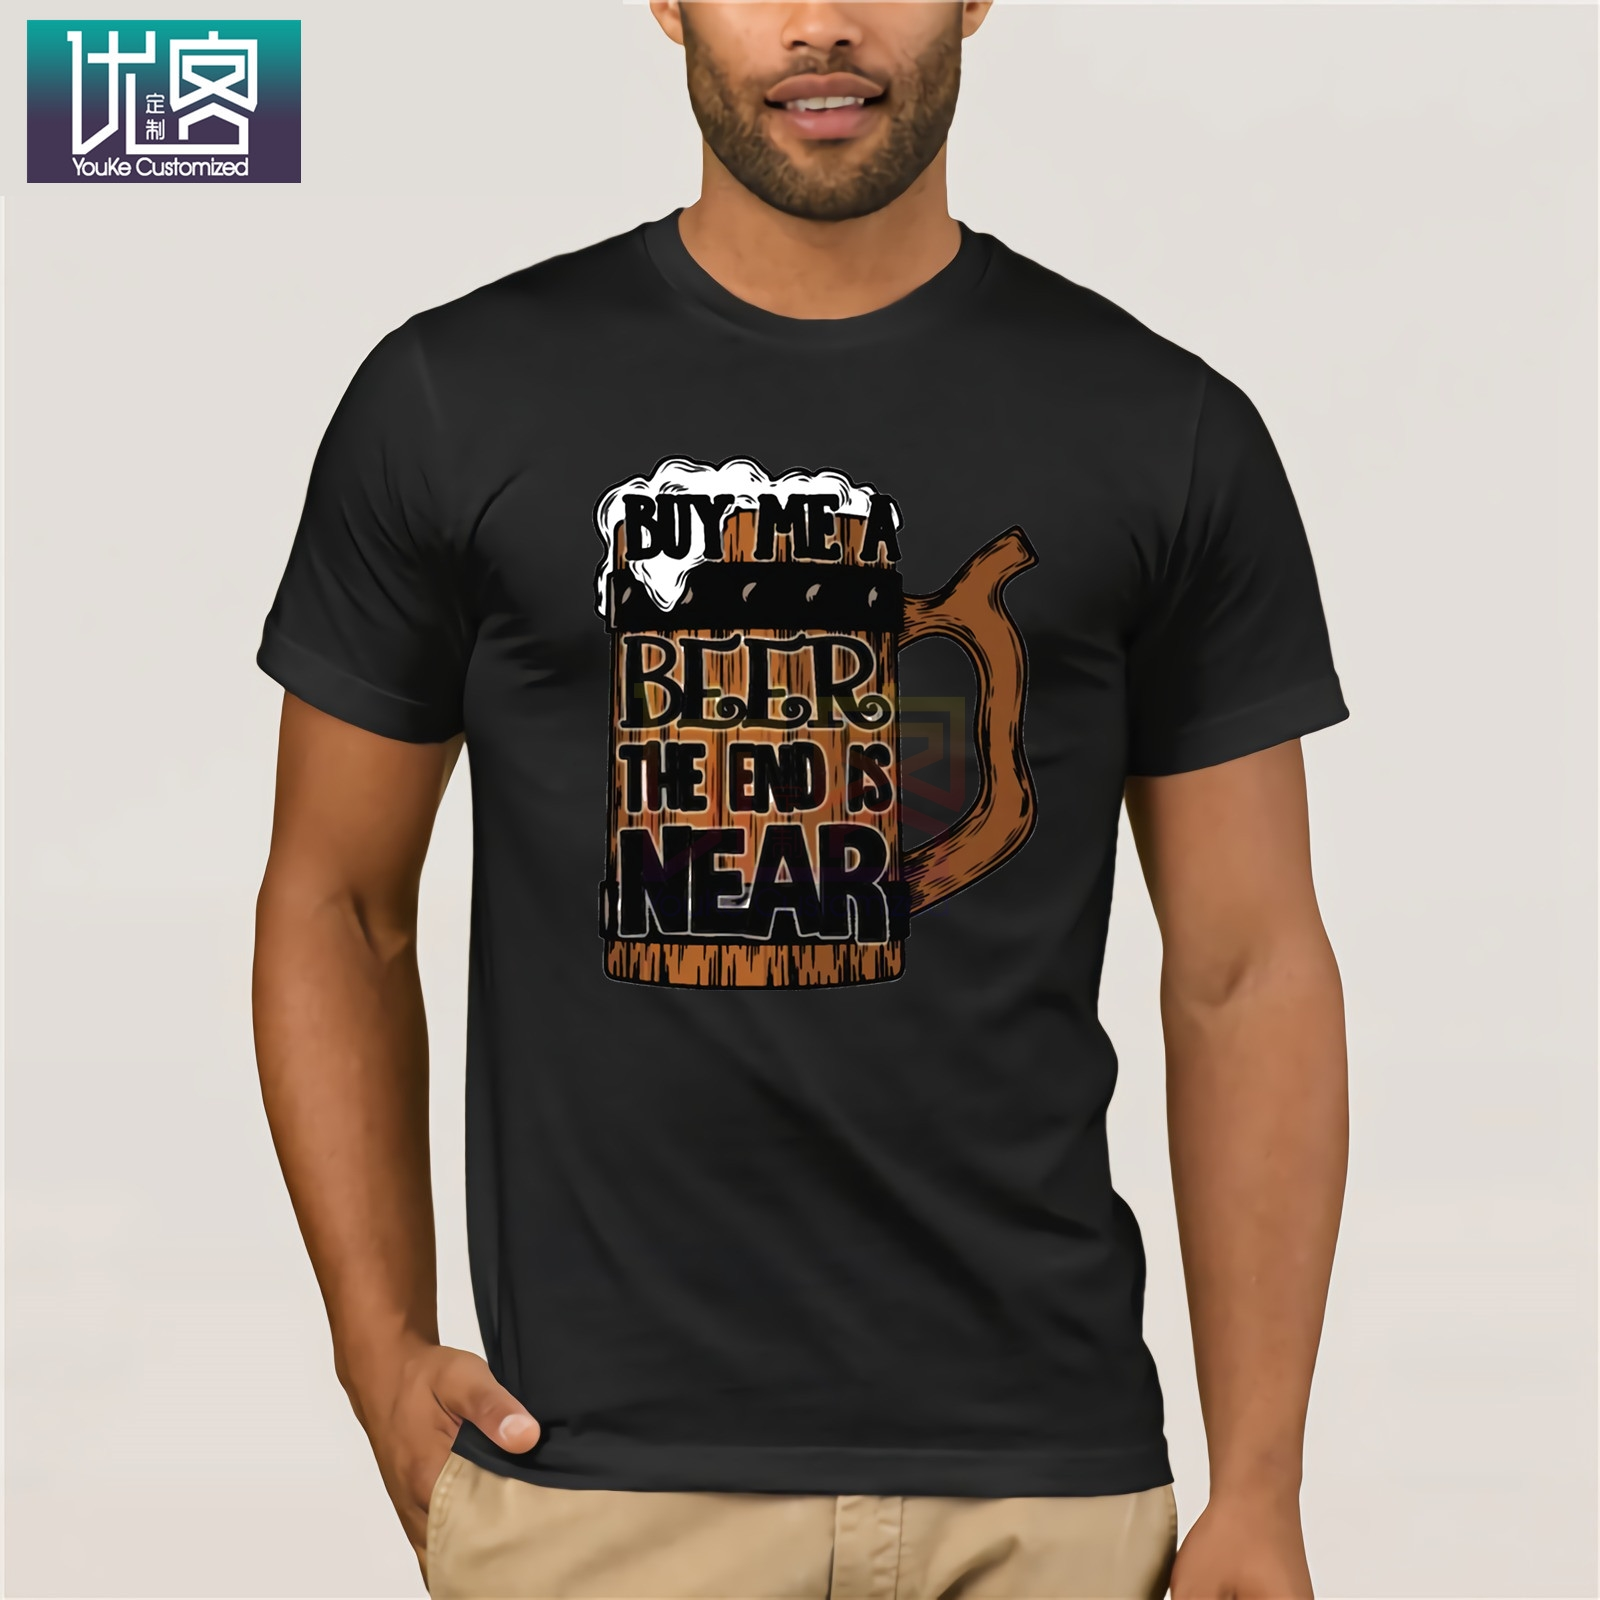 Buy Me A Beer The End Is Near T-Shirt Men's Casual T Shirts Masks Words Hip Hop Tops Tee Funny Print Tshirt Men Hip Hop